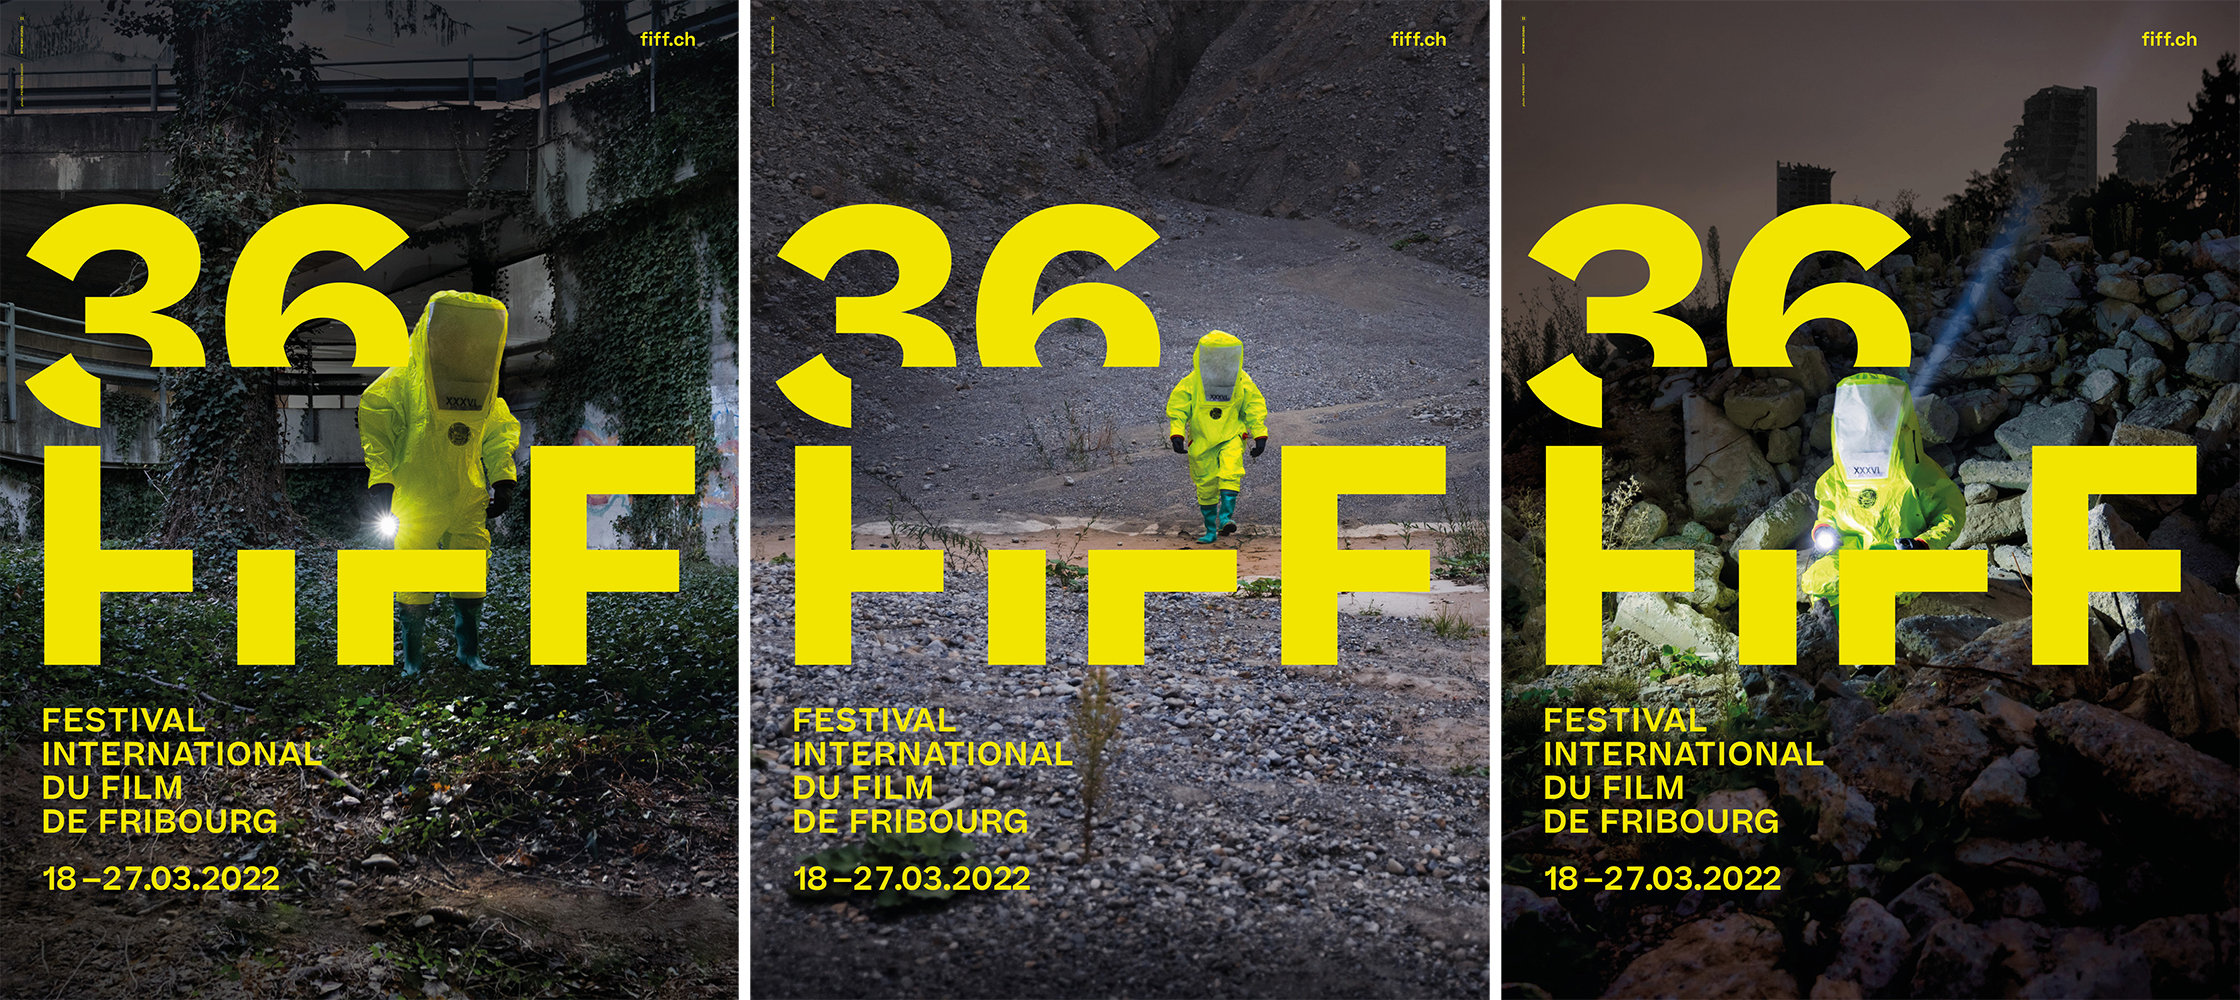 The three posters of FIFF22